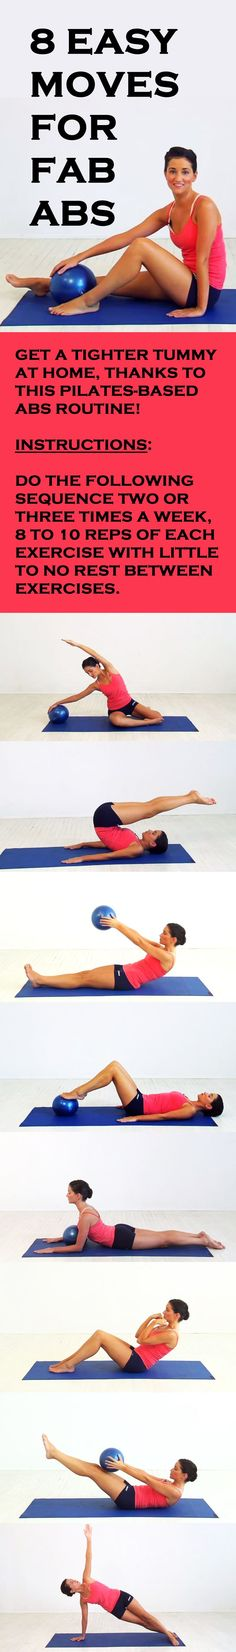 8 easy moves for fab abs! #abs #sixpack #flattummy #abworkout #pilates #abexercise #fitness